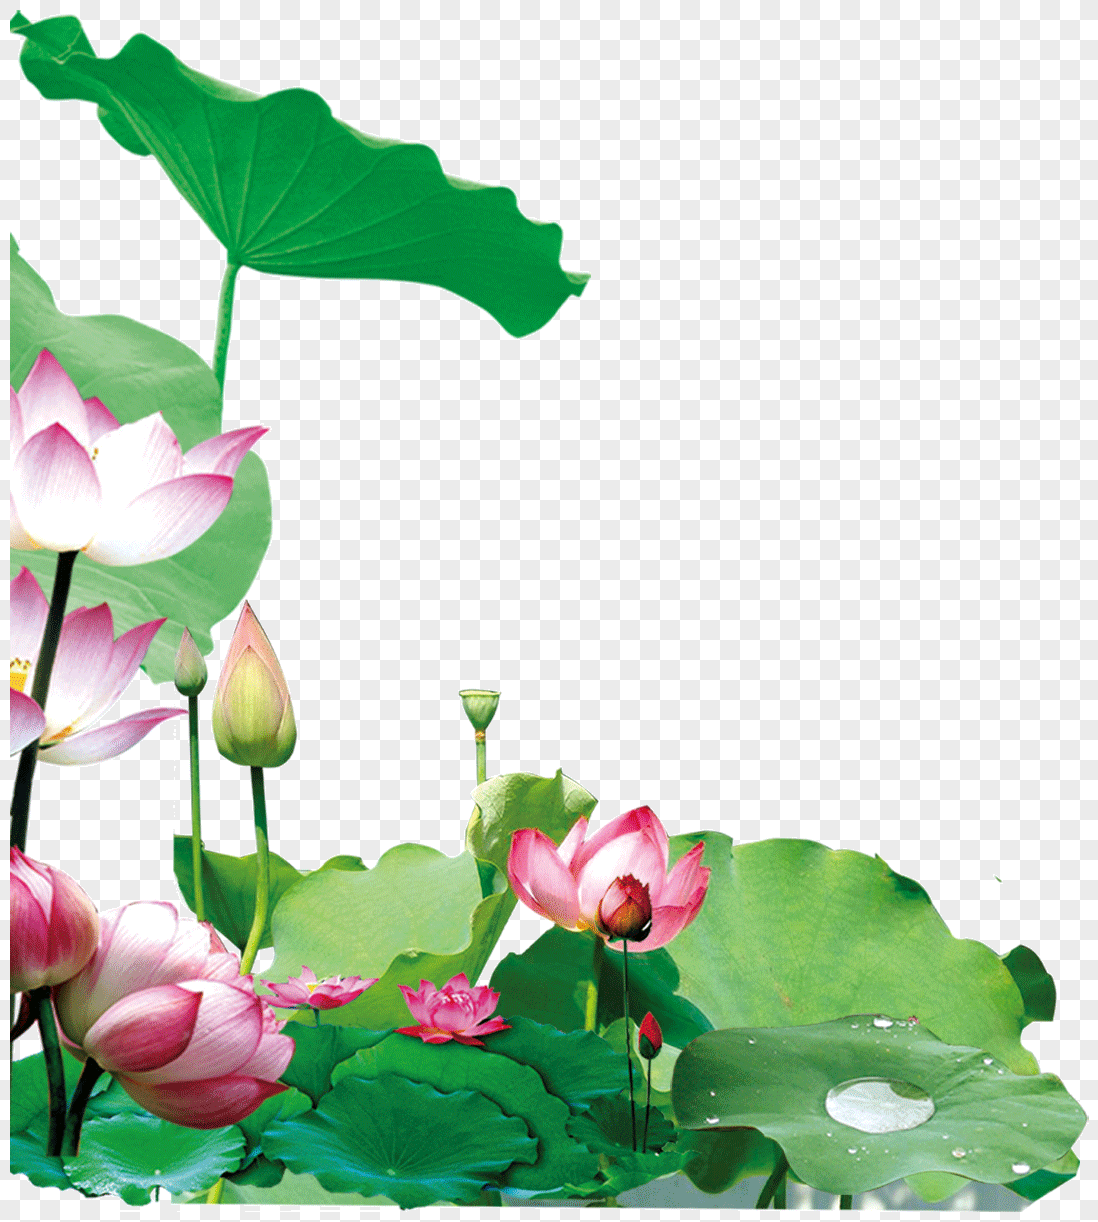 Lotus flower in the lotus pond photo image_picture free download.